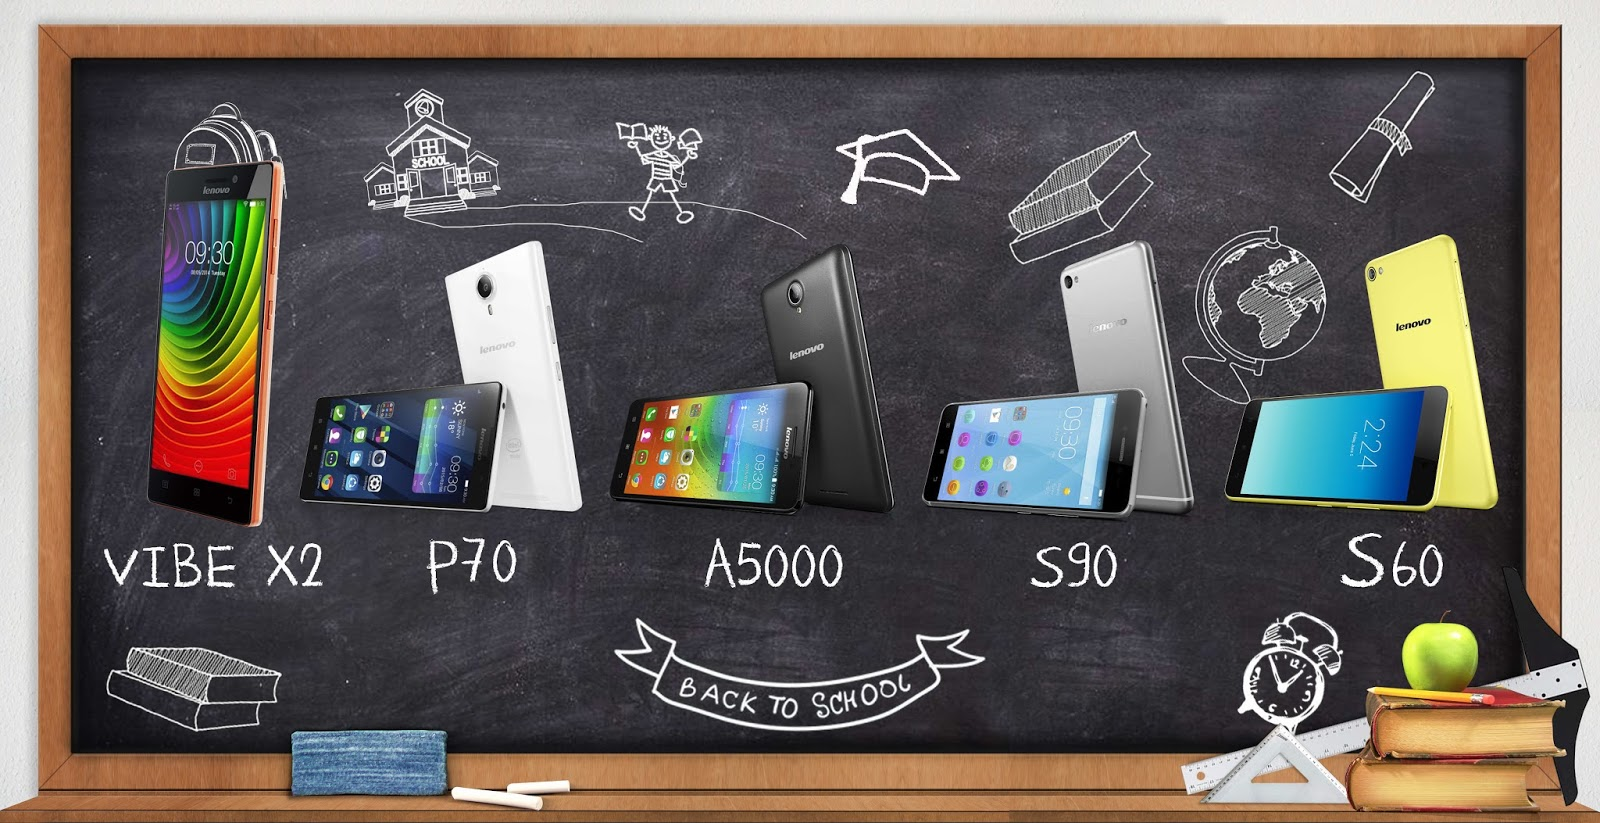 Lenovo Back to School Smartphones